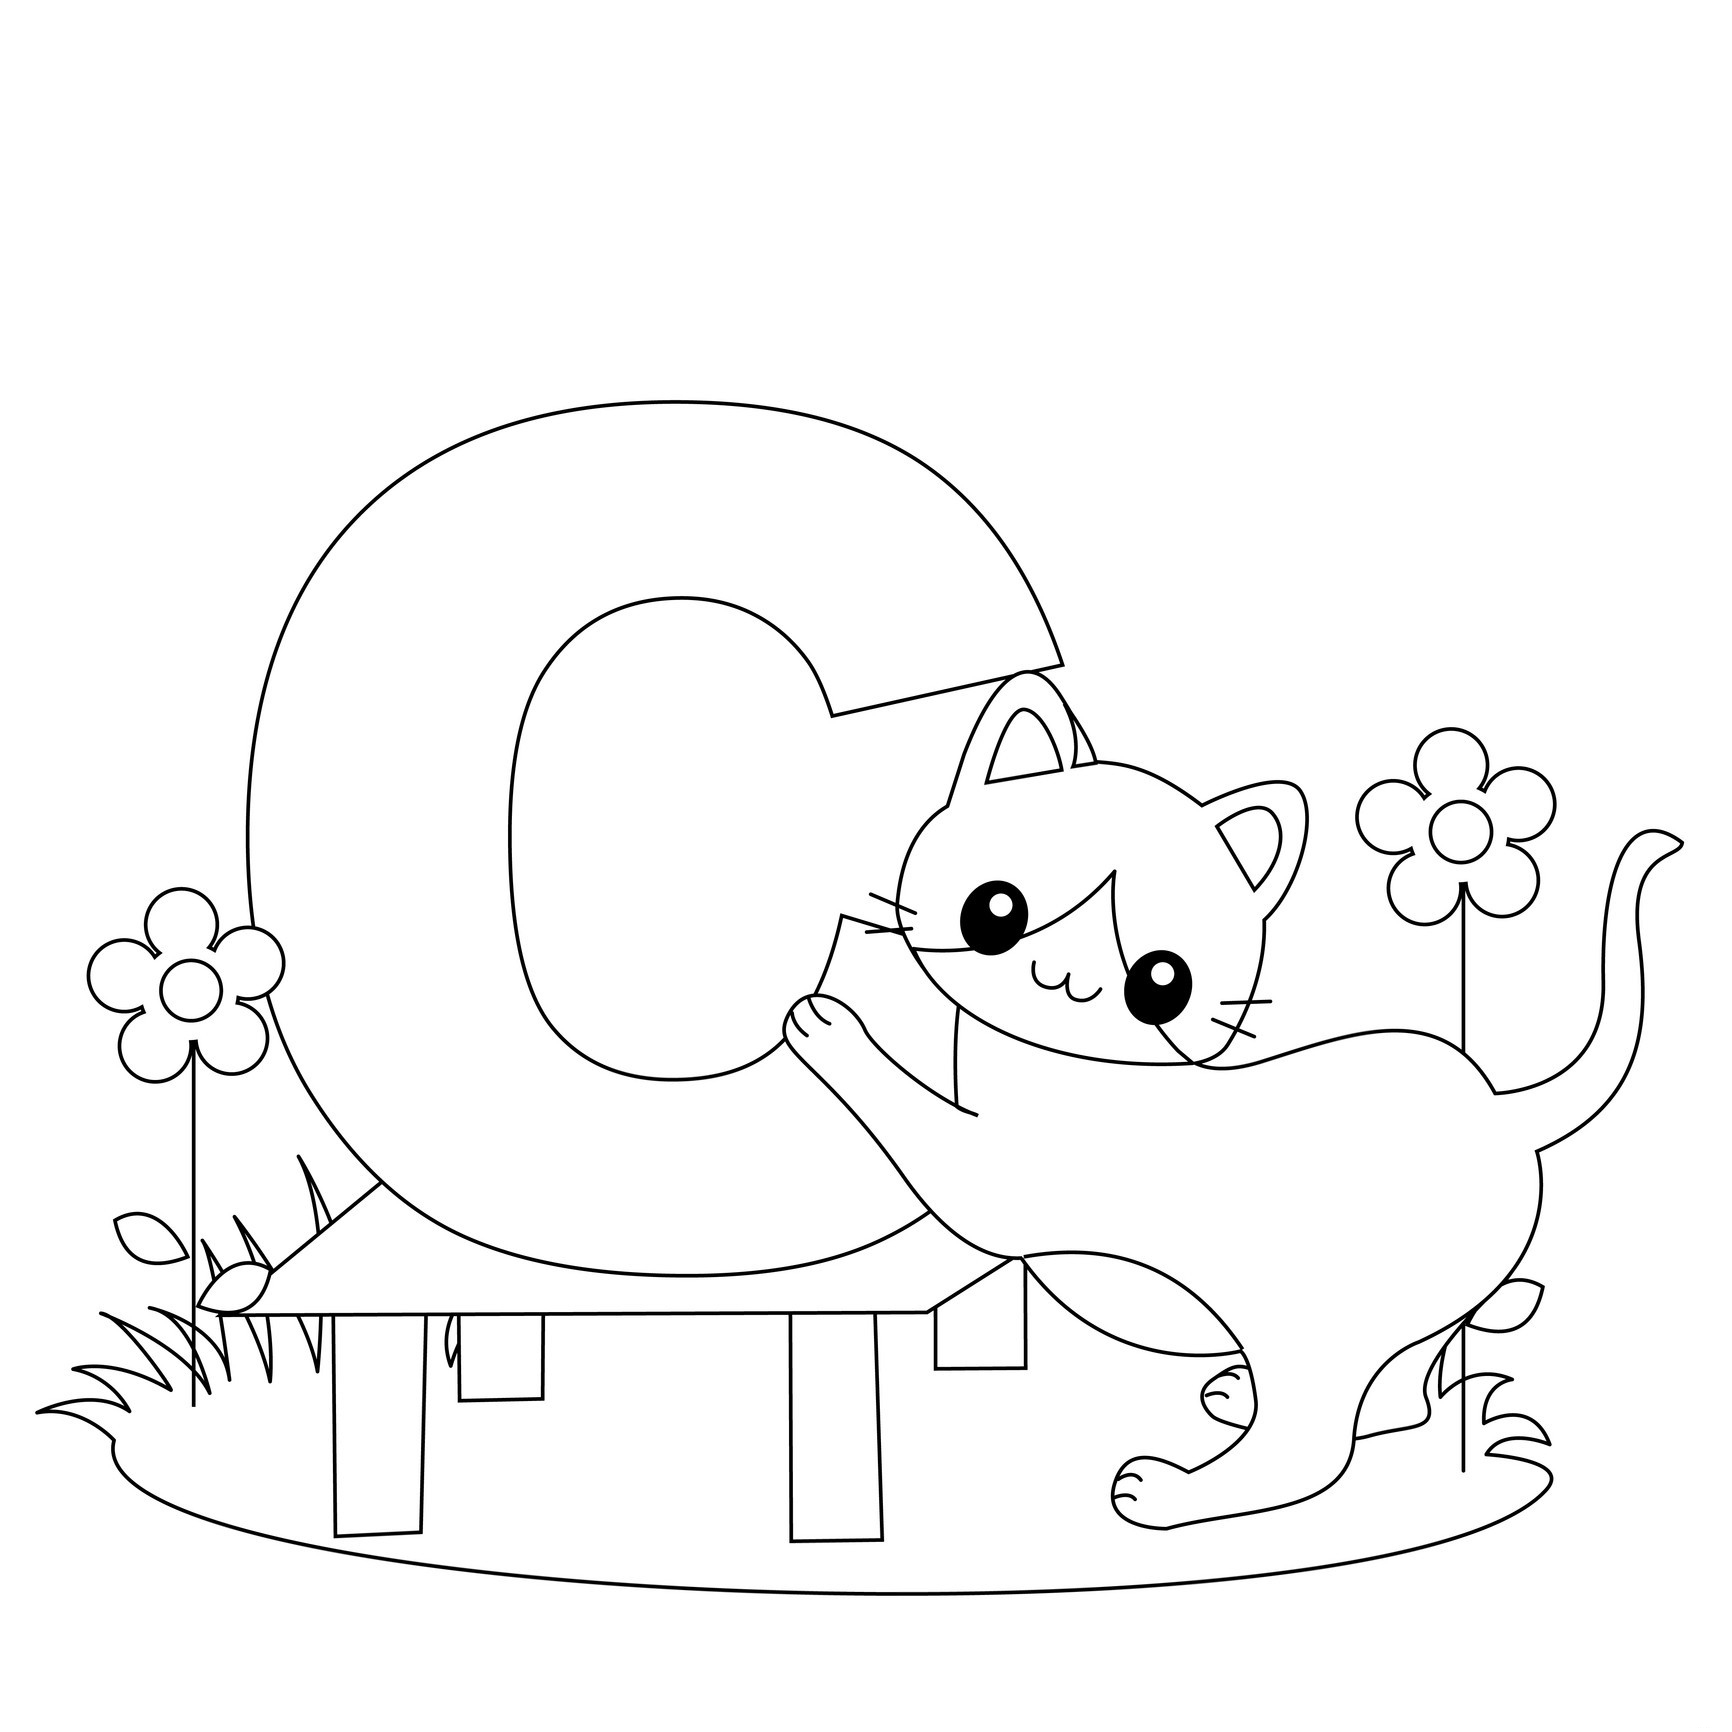 animal alphabet colouring pages animal alphabet coloring letter w coloring child coloring colouring pages alphabet animal